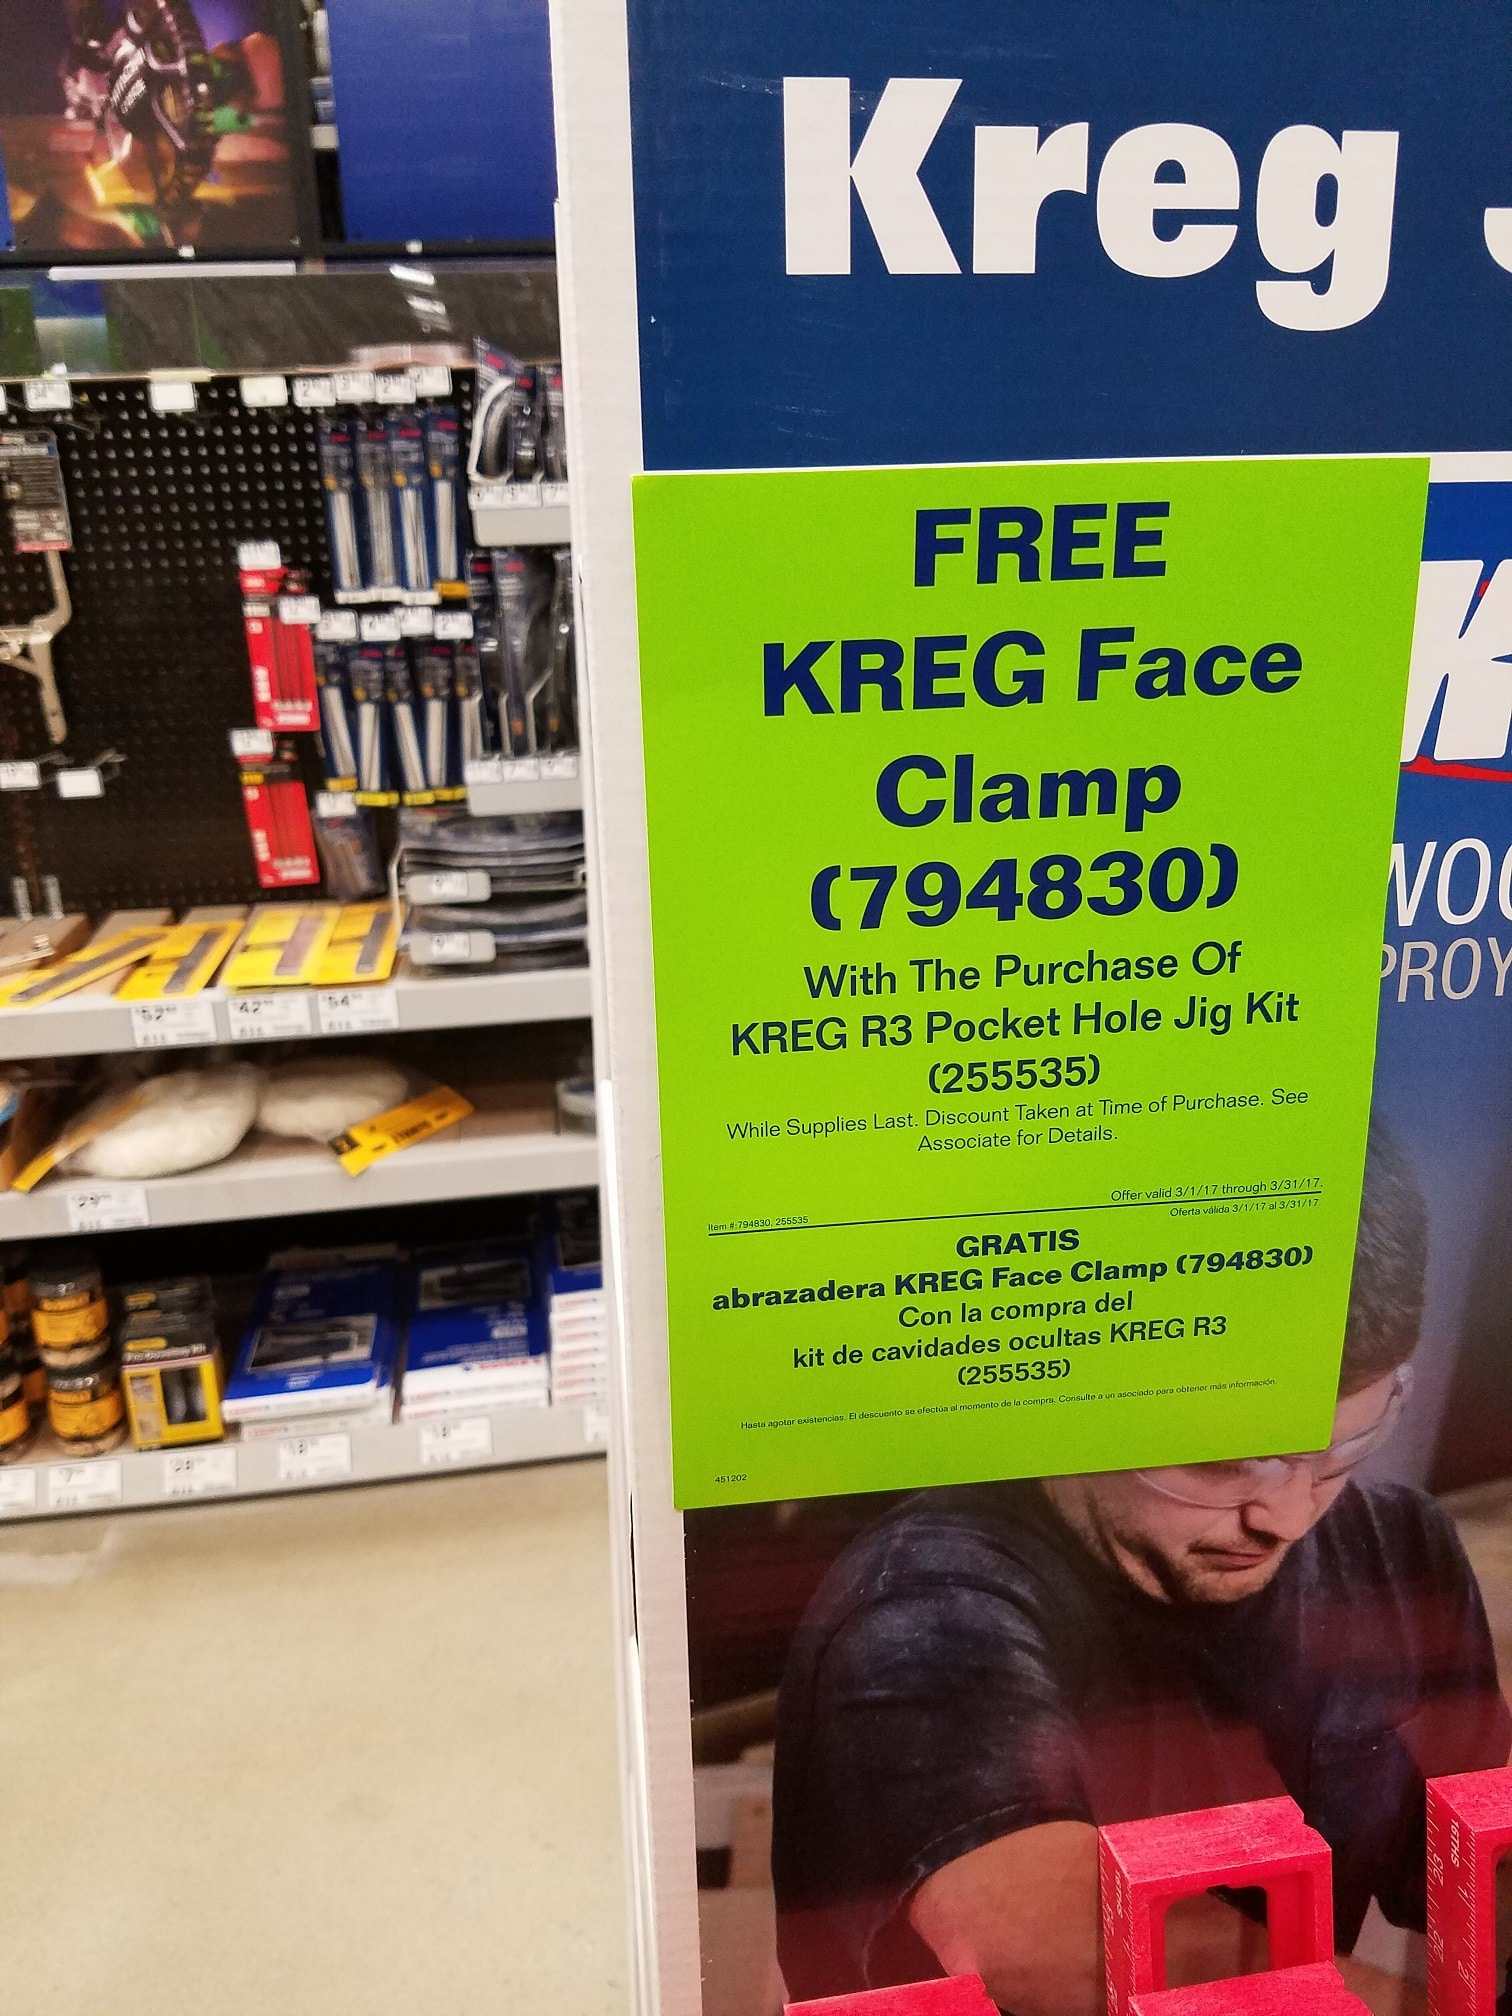 Kreg R3 Pocket Hole System + Kreg 2'' Micro Face Clamp $39 @ Lowes in-store